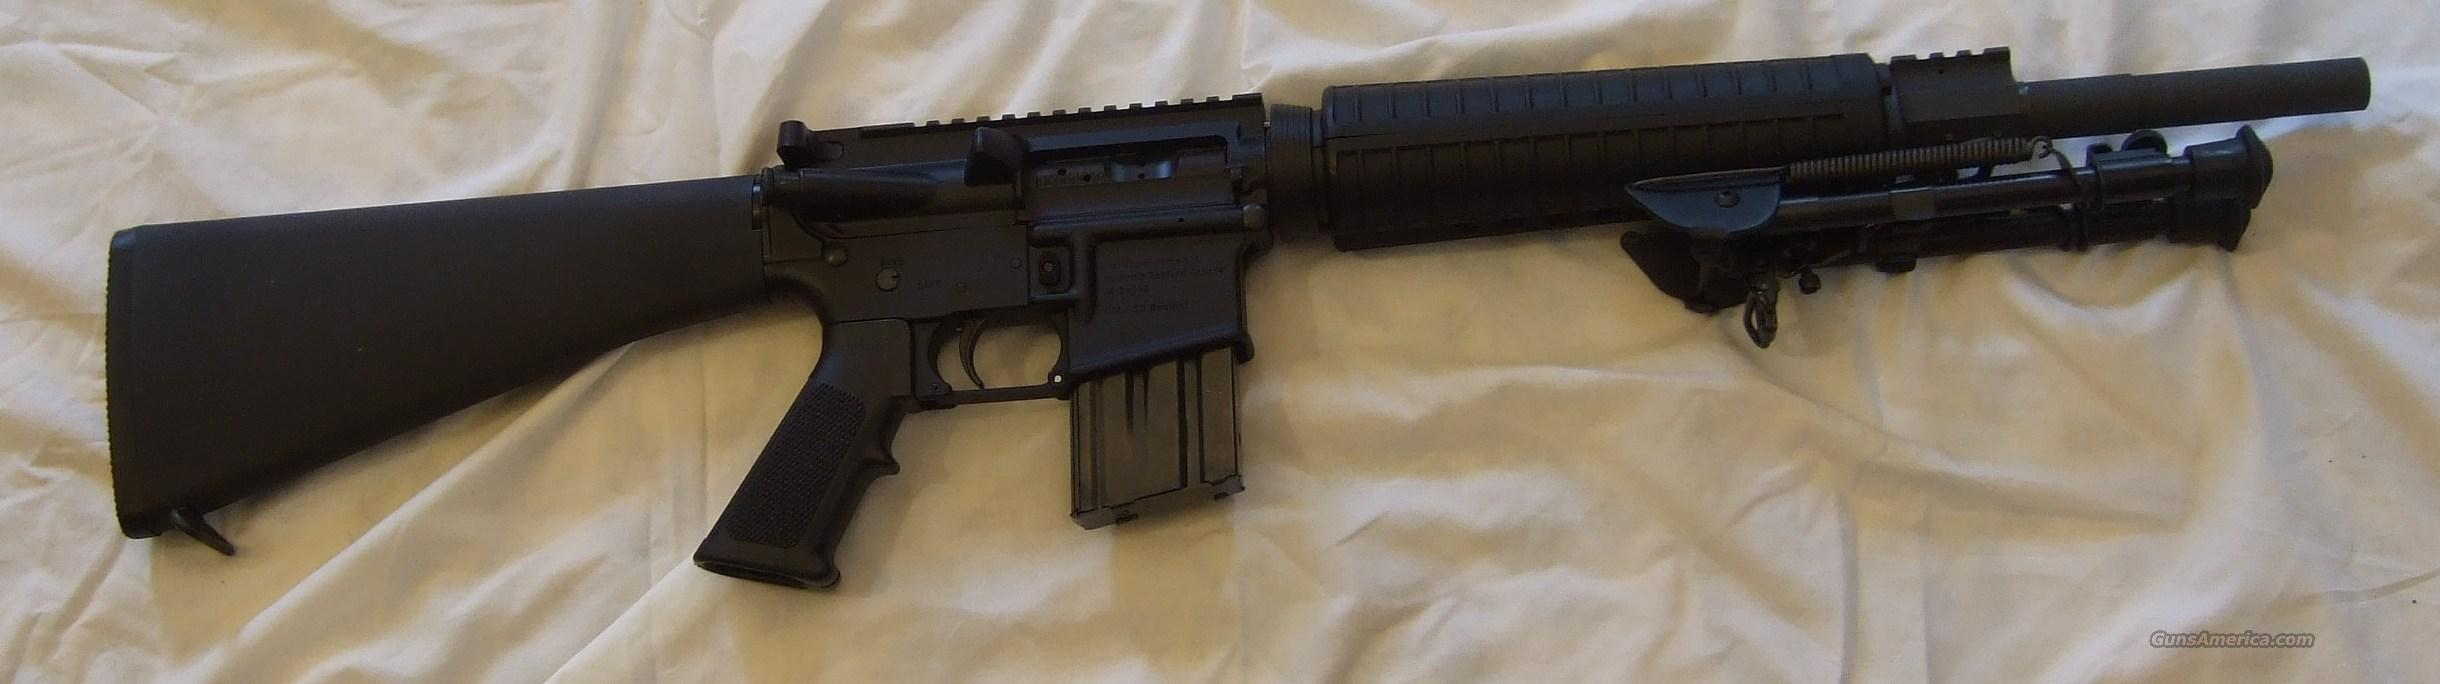 Alexander Arms .50 Beowulf AR-15  Guns > Rifles > AR-15 Rifles - Small Manufacturers > Complete Rifle